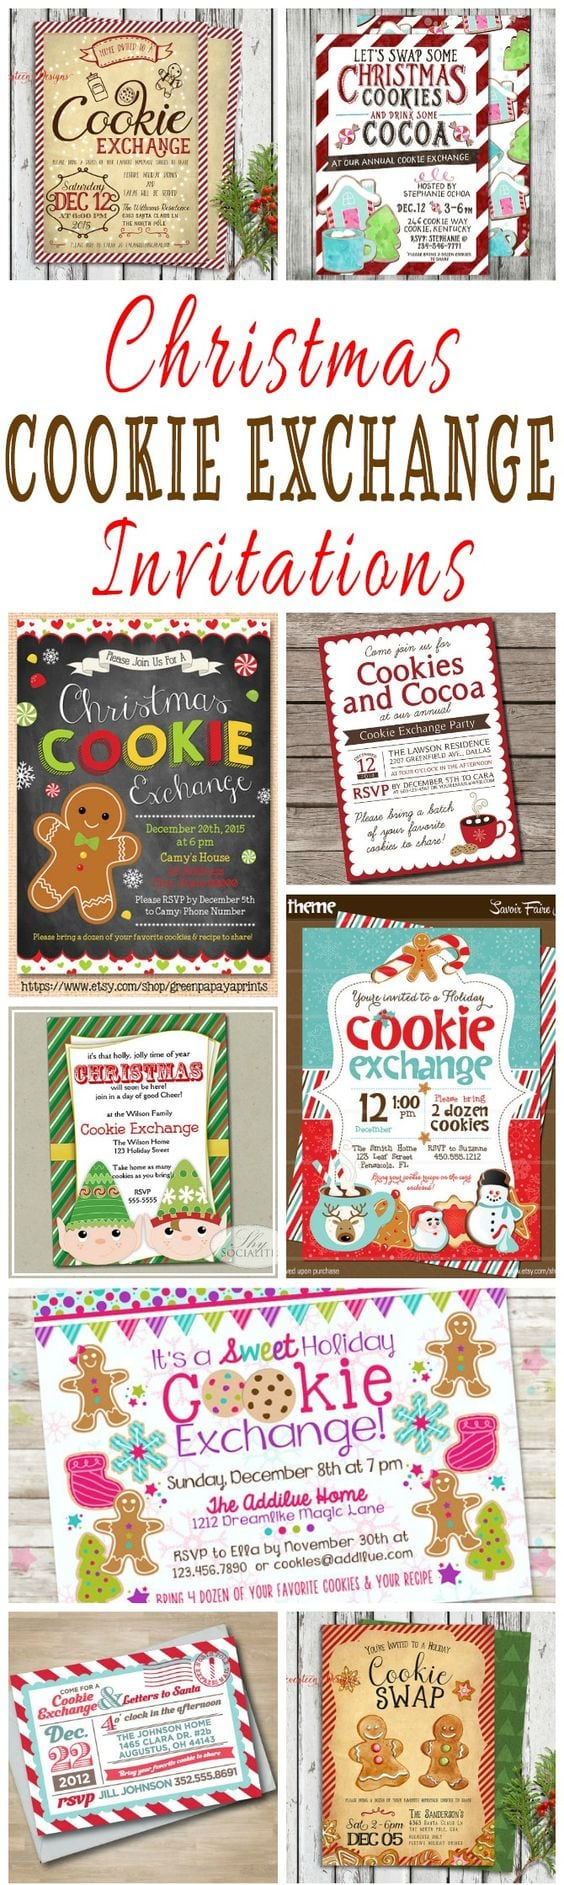 25 Christmas Cookie Exchange Party Invitations